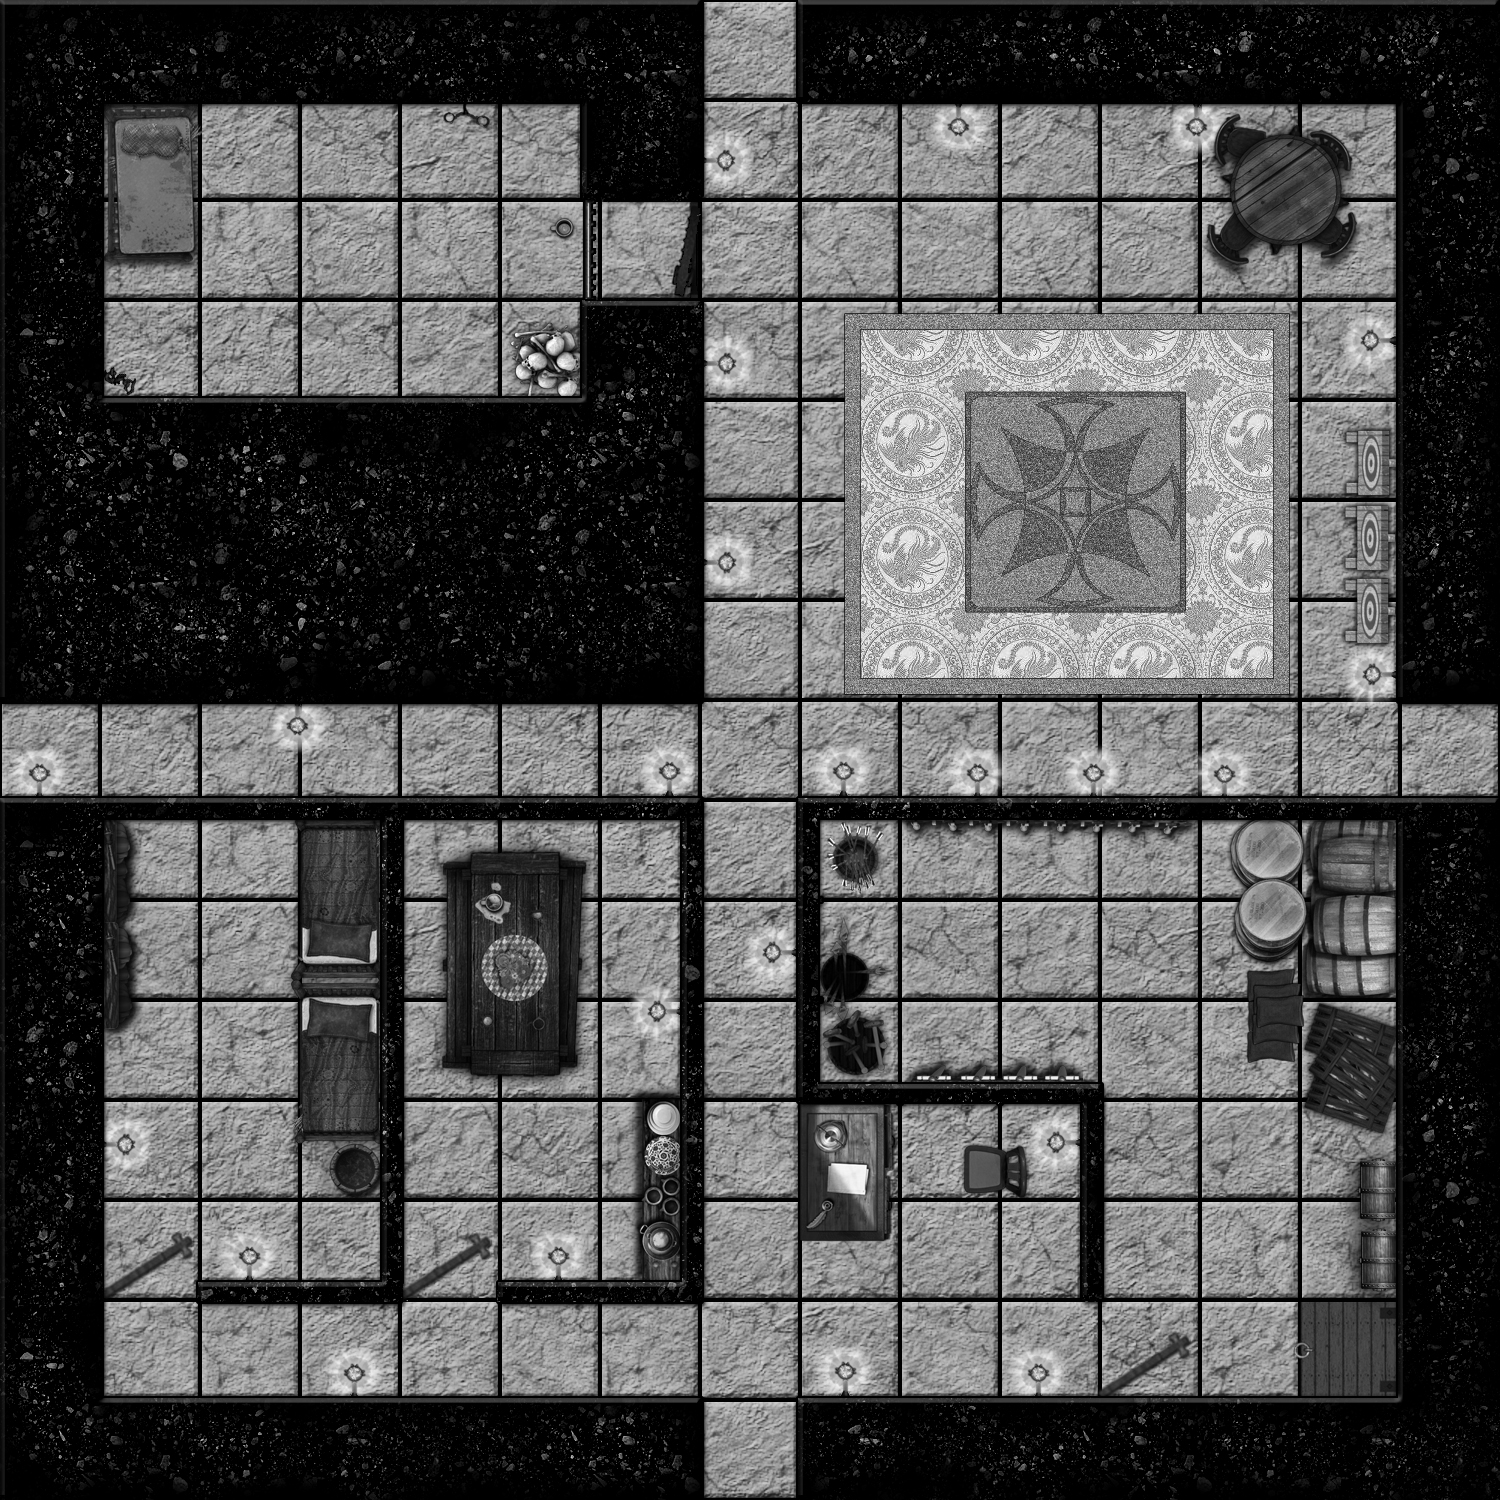 Dungeon map for a Lite Challenge